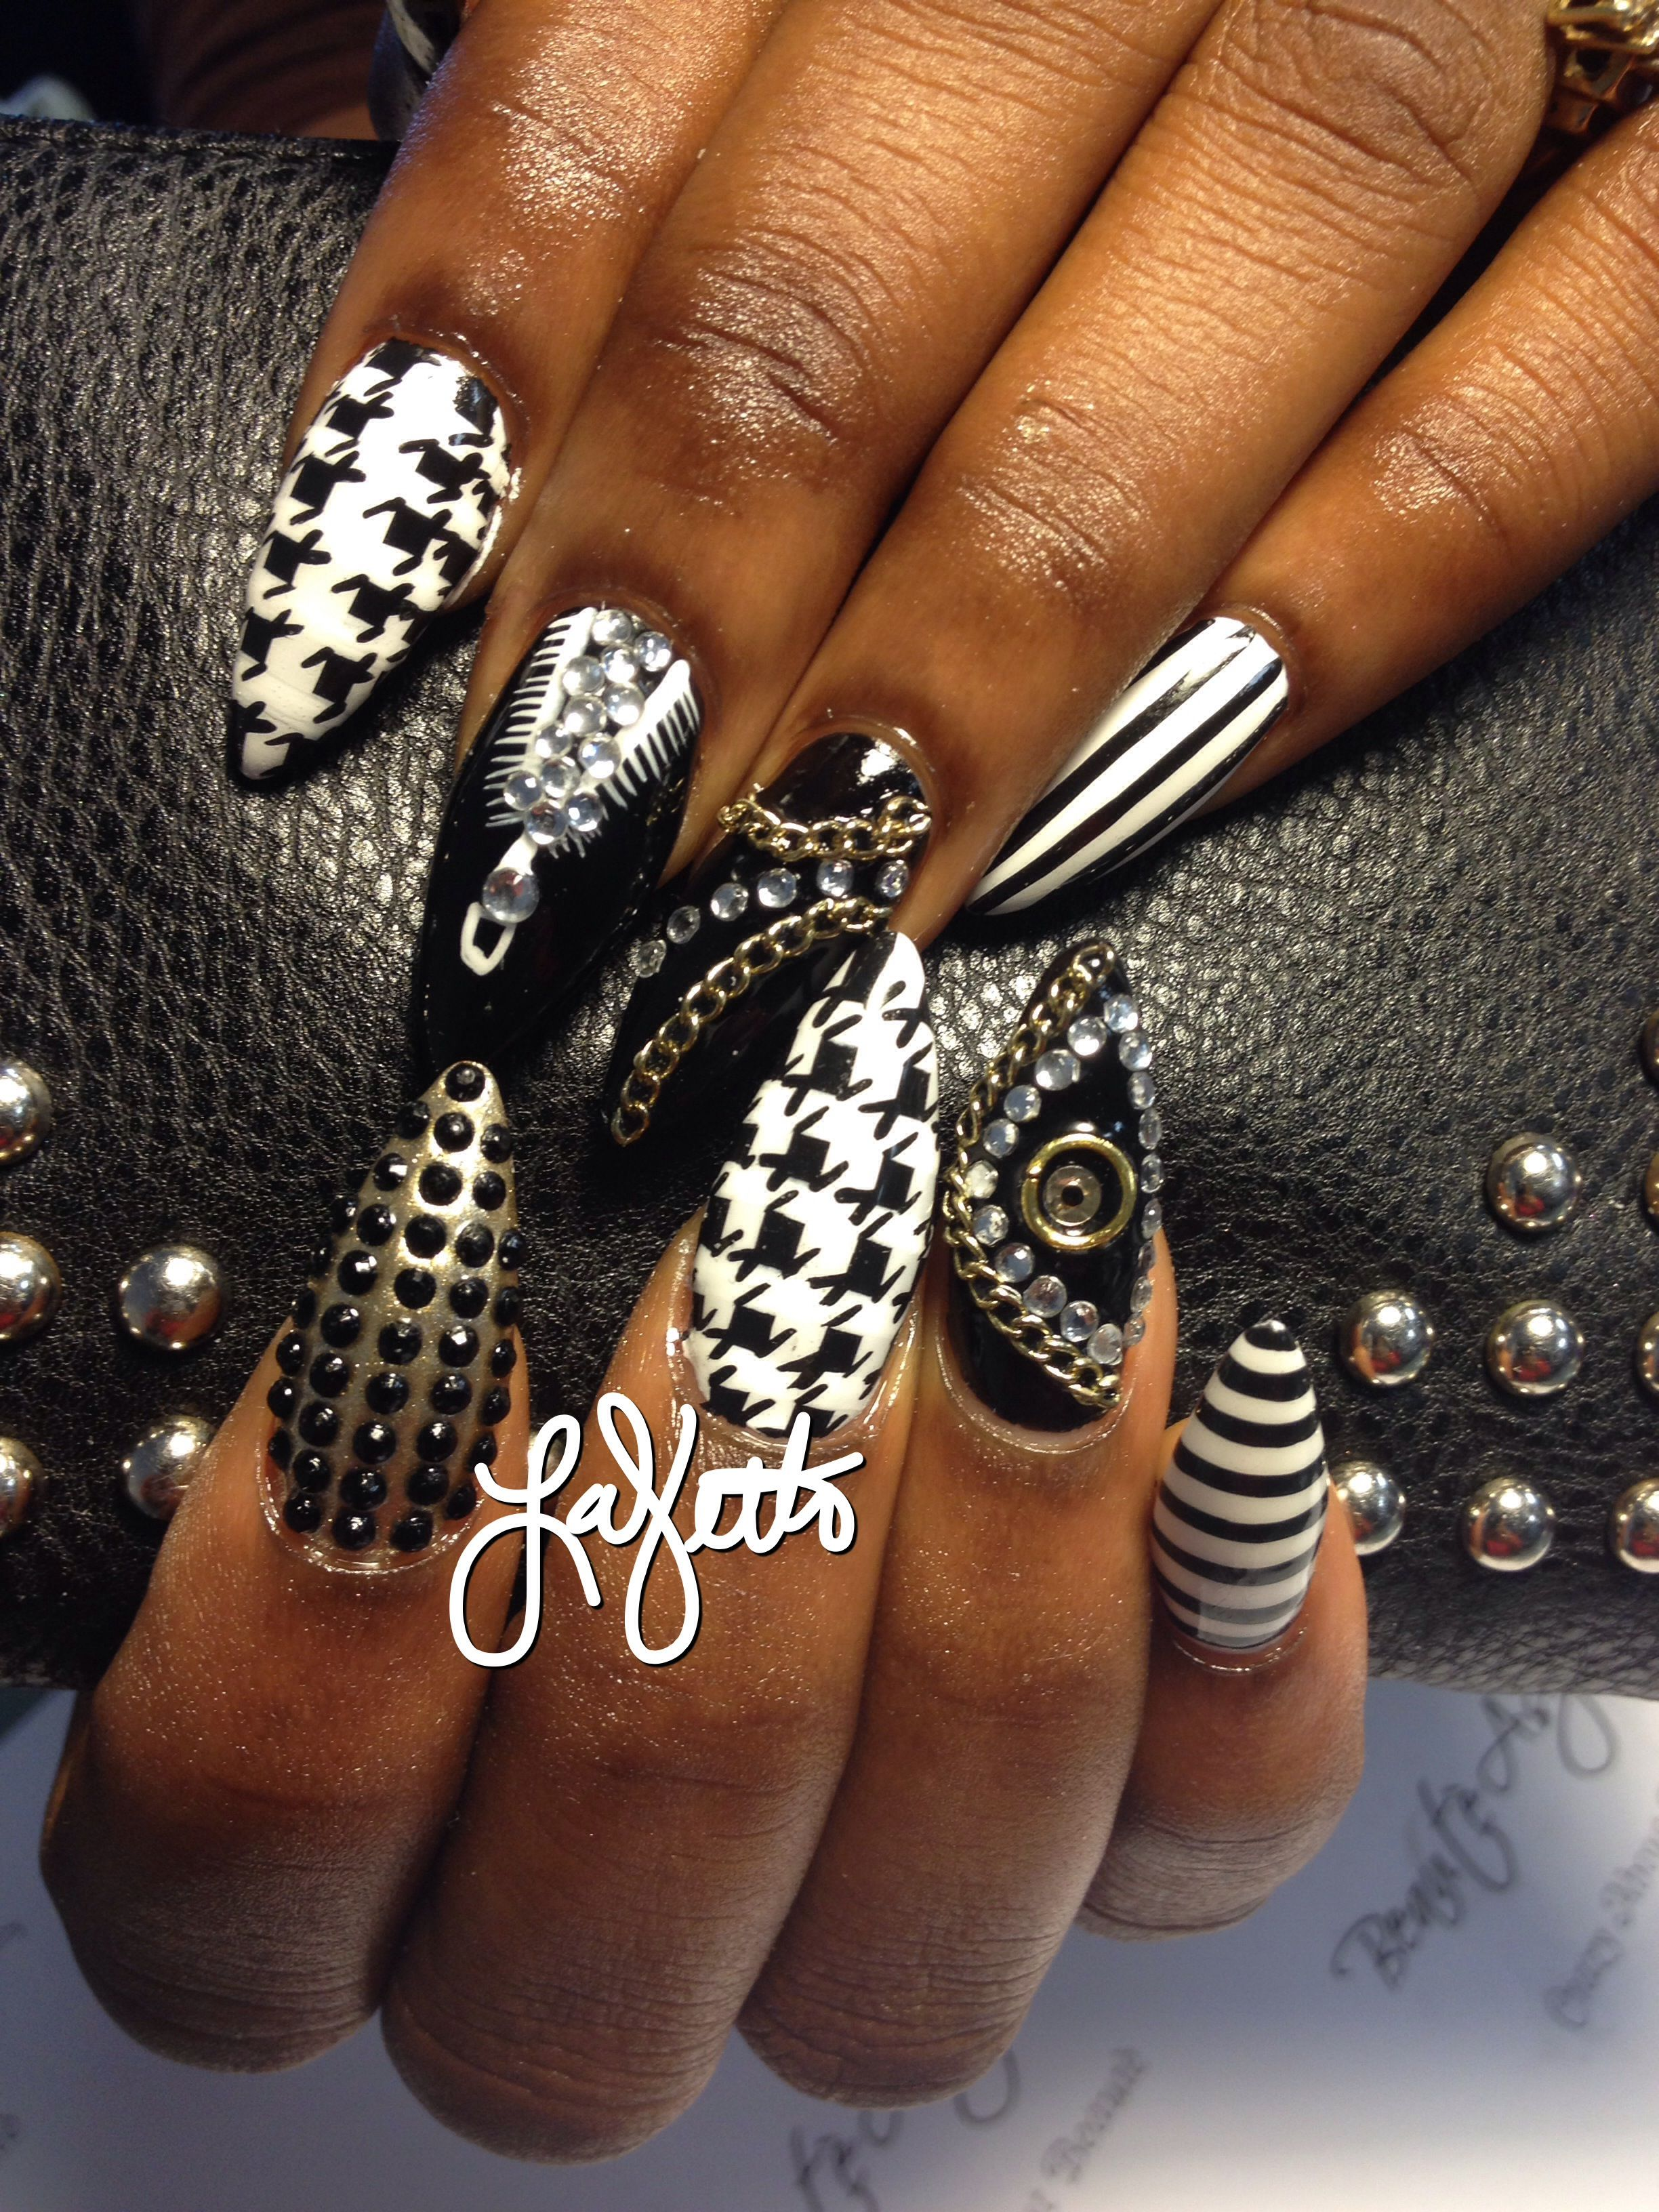 Lavette | Top nail, Nails magazine and Nails games